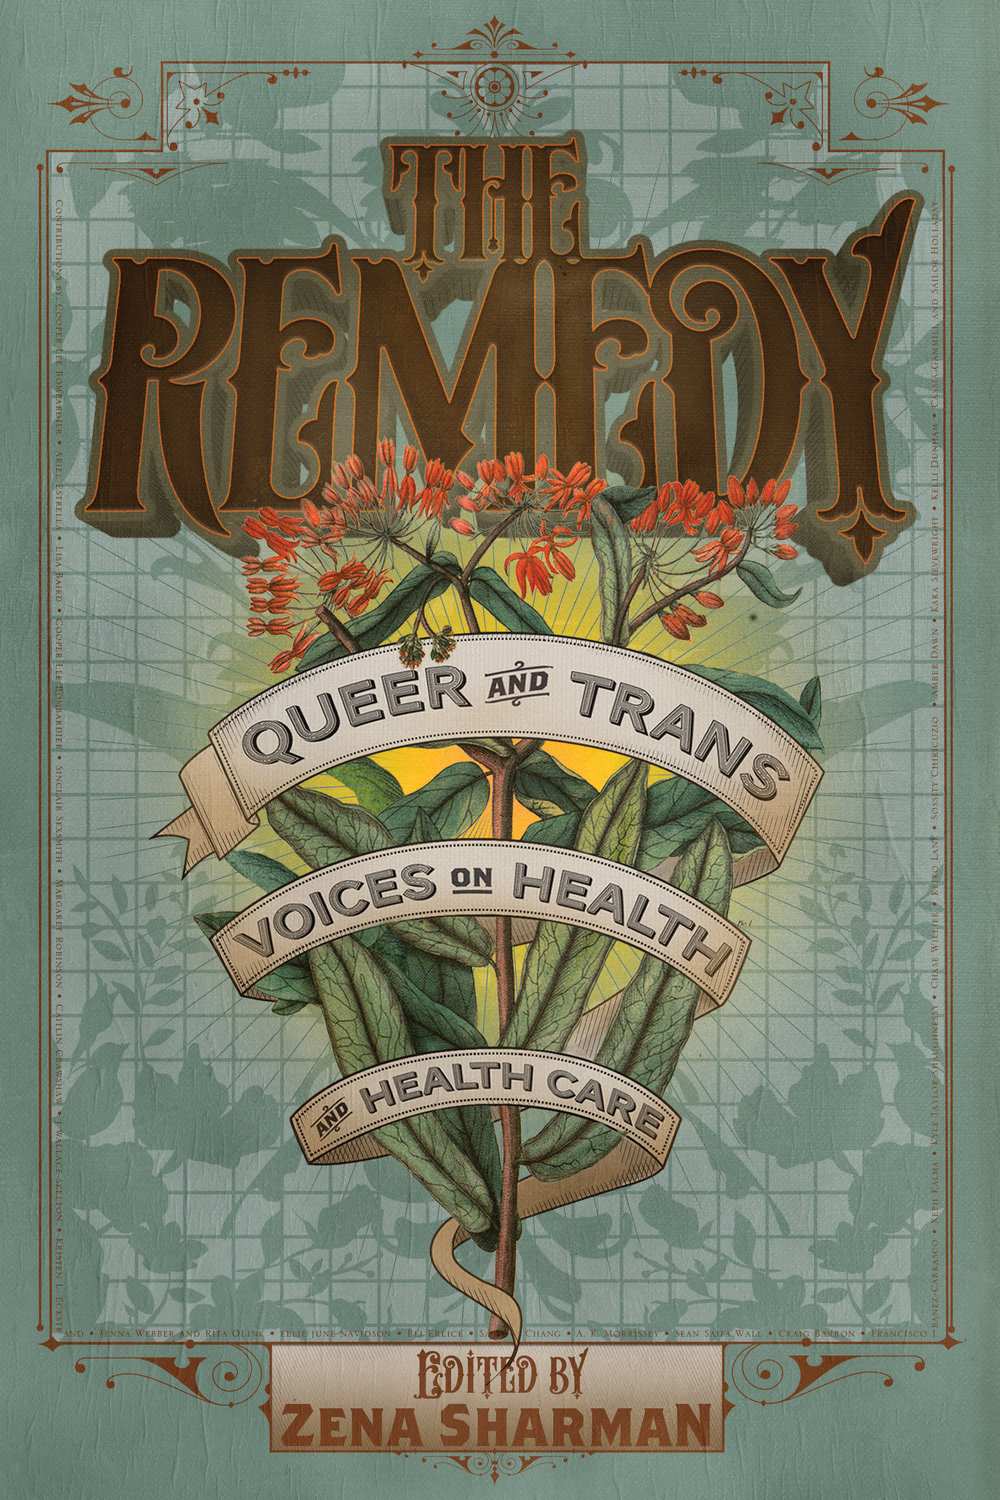 image description: the cover of the anthology. It spells out the title of the book in ornate letters on a green background, with an illuminated flowering plant underneath.